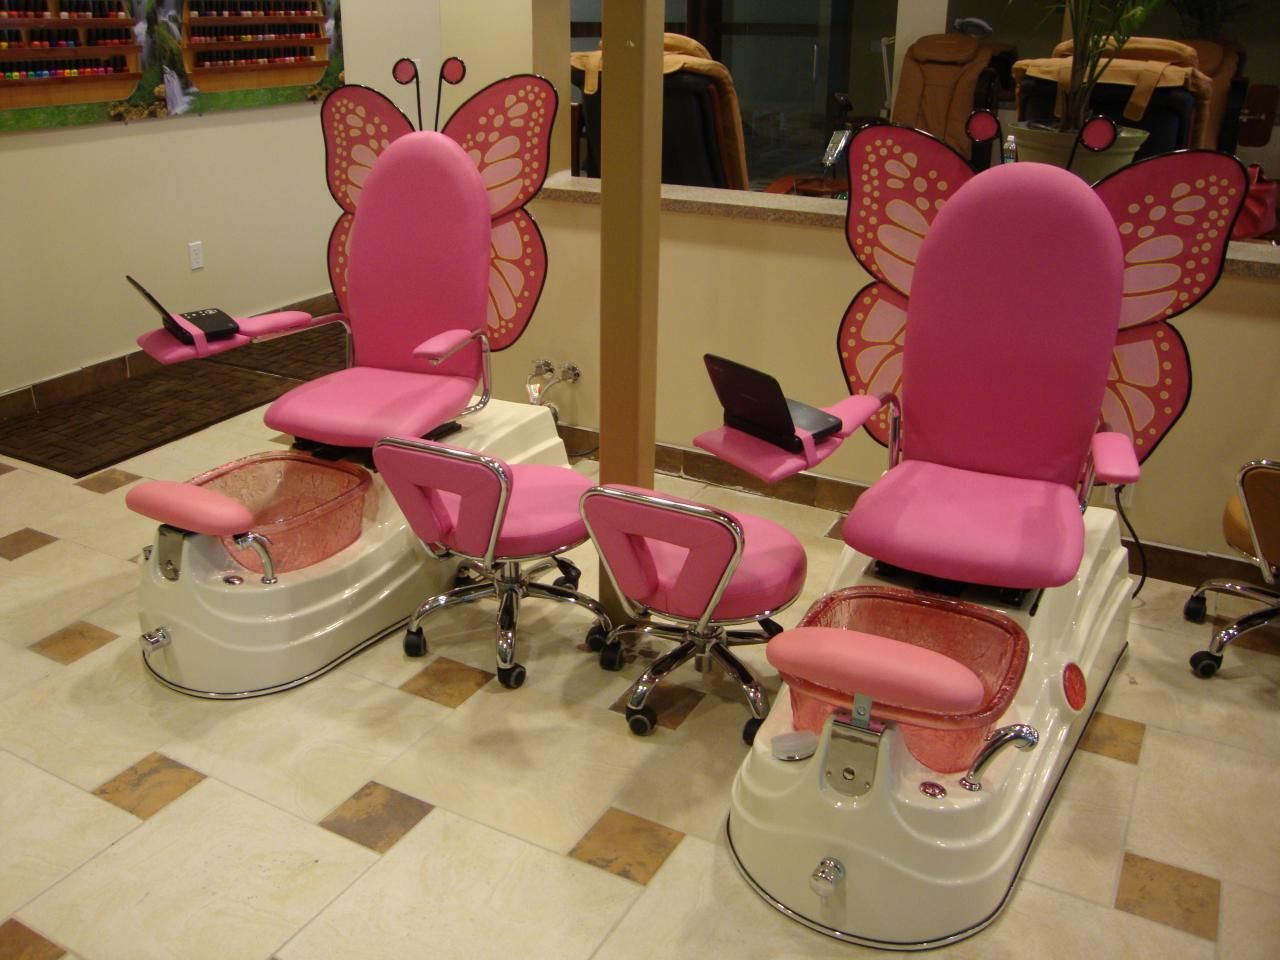 Best Pedicure Chairs Revealed Top 5 Reviews 2020 Martini